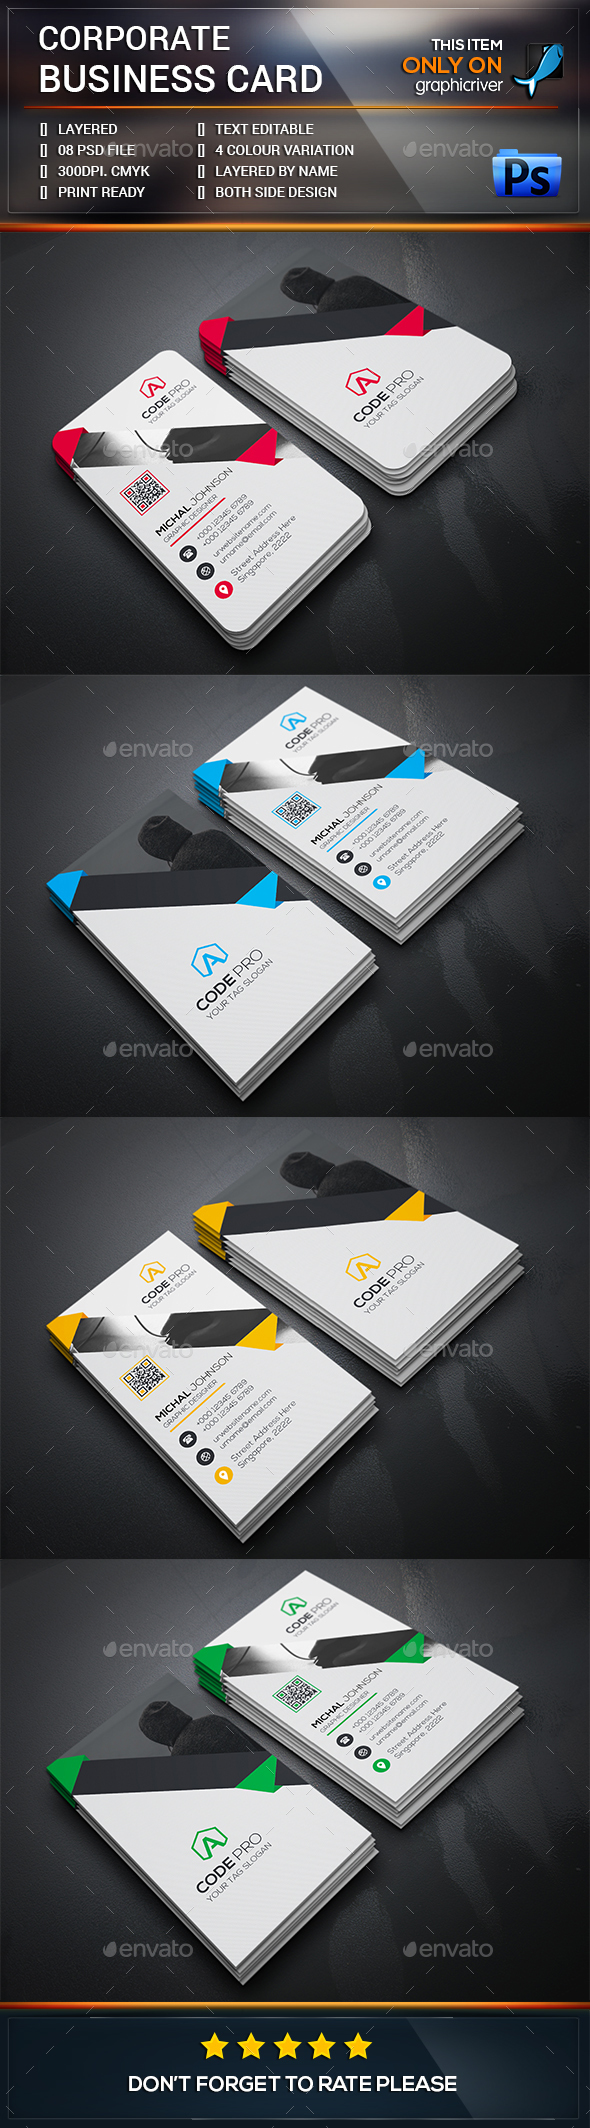 Smart Corporate Business Card Template PSD #visitcard #design Download: http://graphicriver.net/item/smart-corporate-business-card/13509193?ref=ksioks